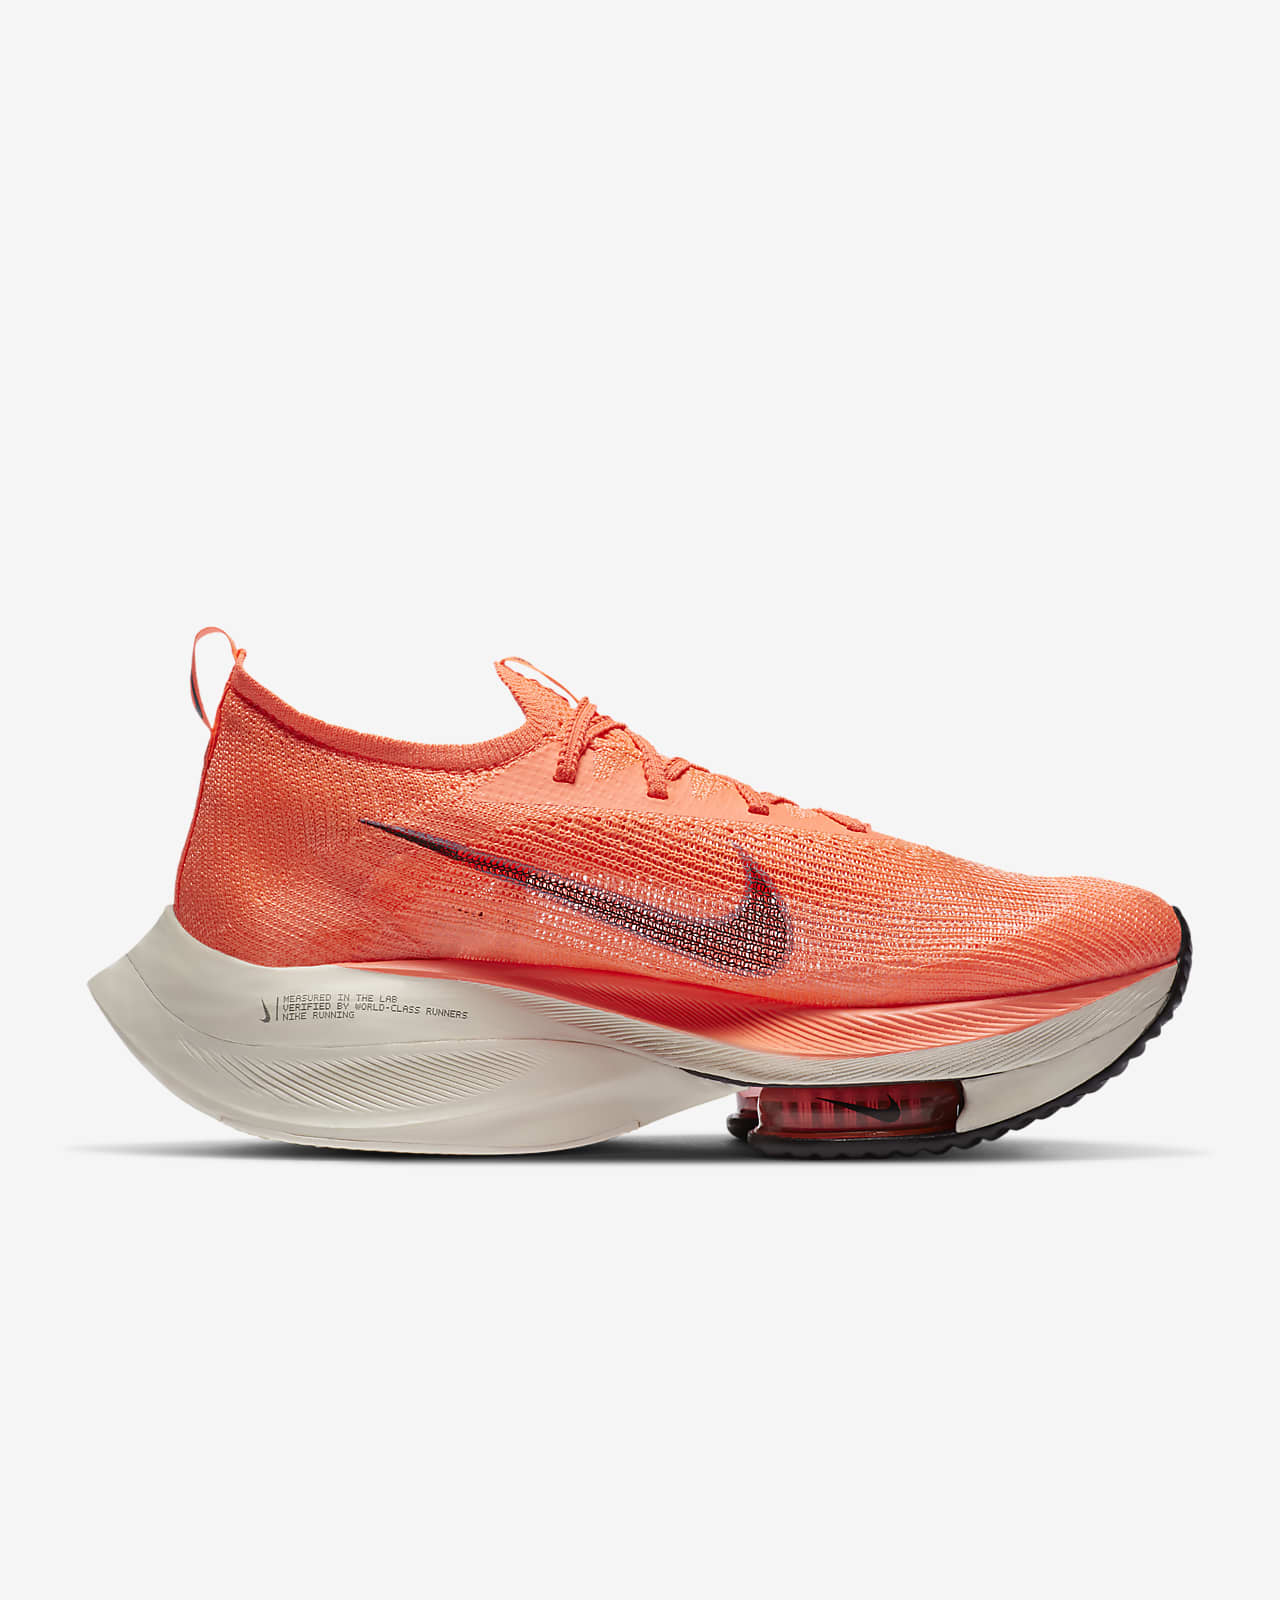 Nike Air Zoom Alphafly NEXT% Men's Racing Shoes